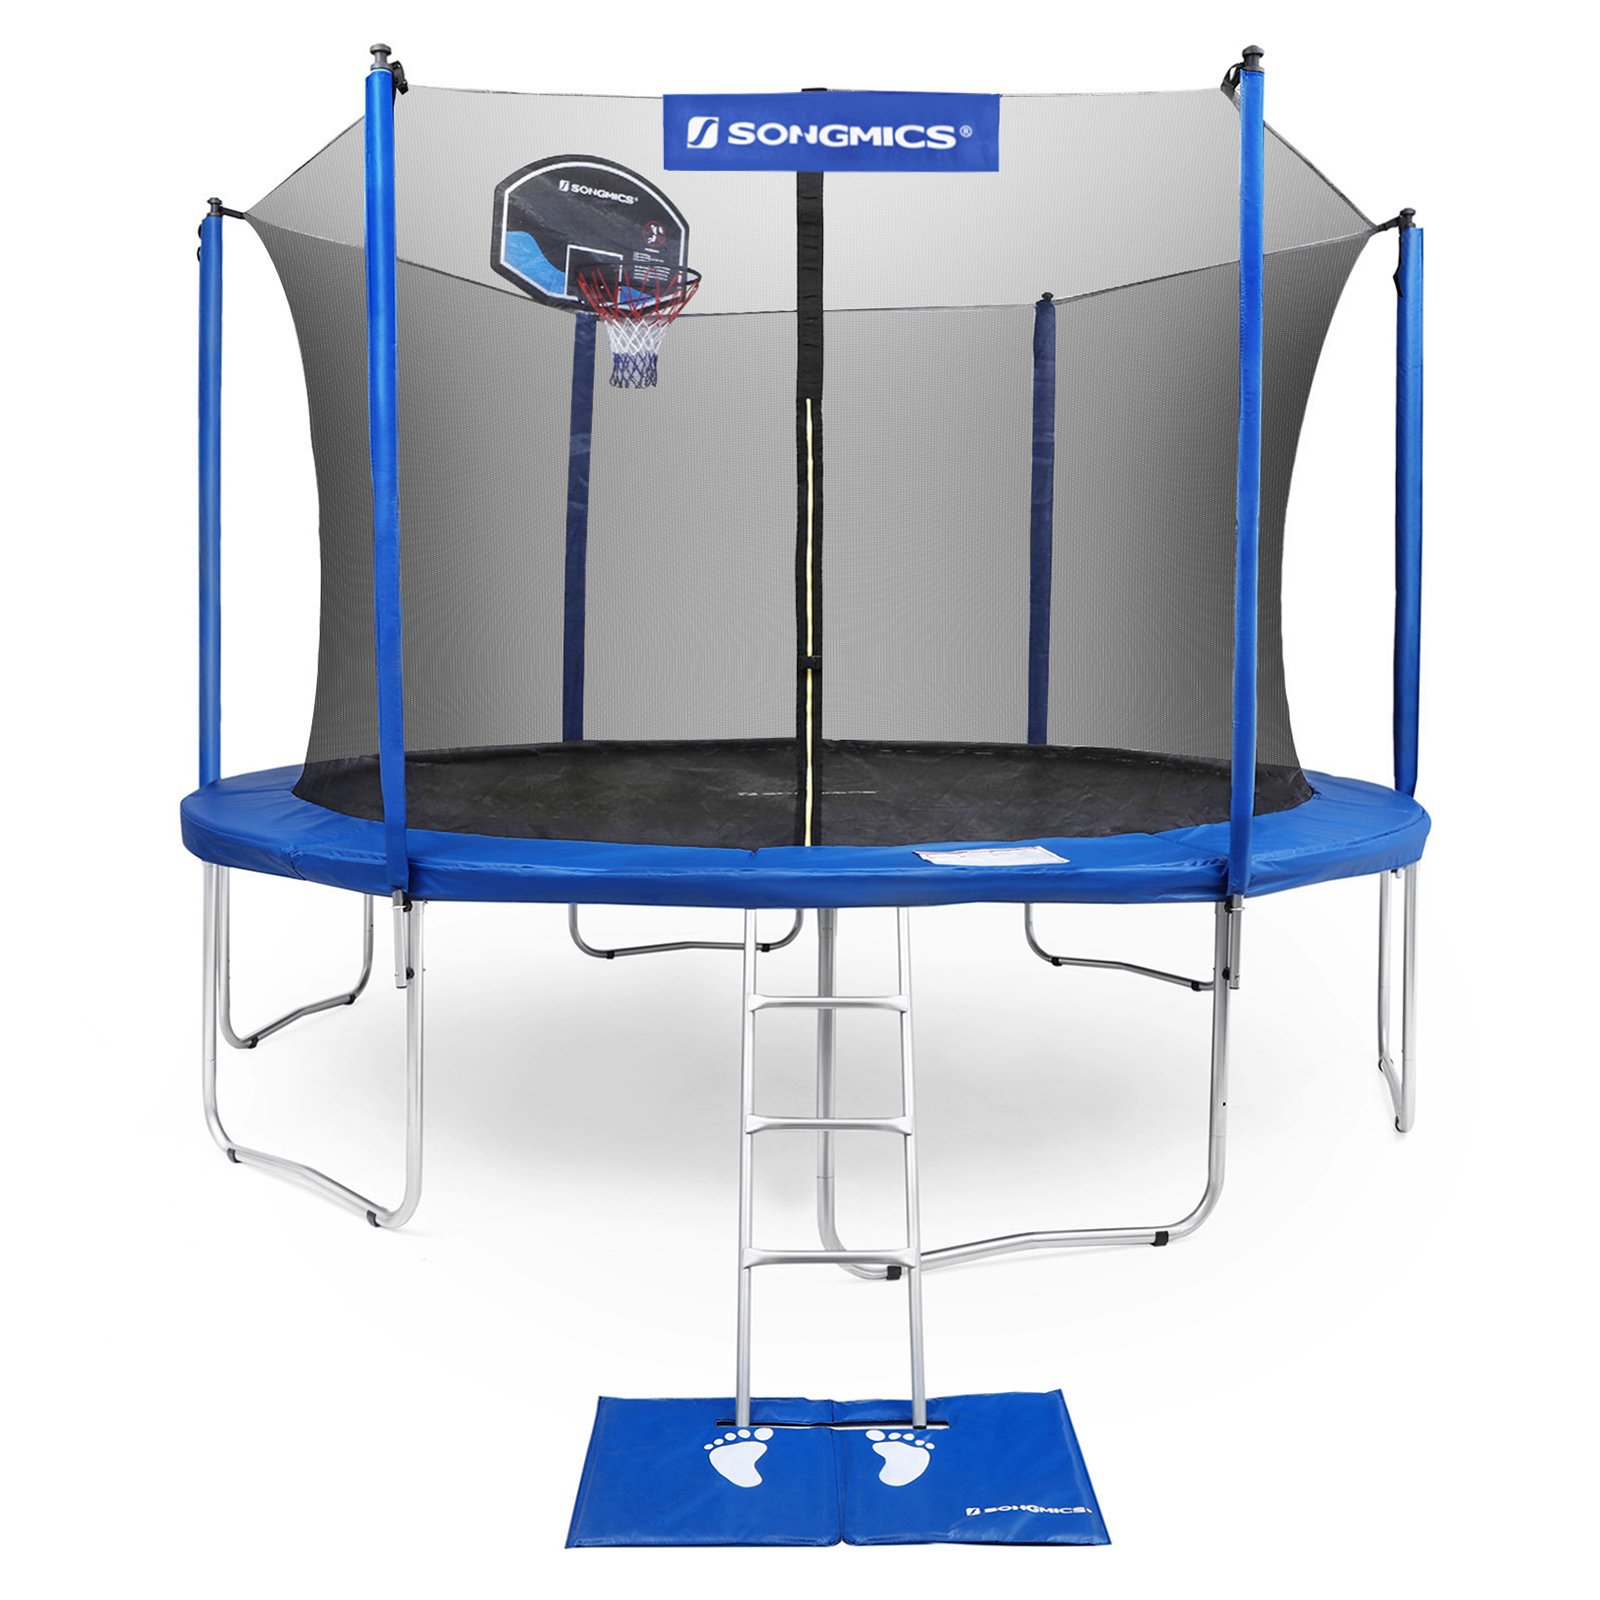 SONGMICS Outdoor Trampoline 12-Feet for Kids with Basketball Hoop and Backboard TÜV Rheinland Certificated According to ASTM and GS USTR12BU